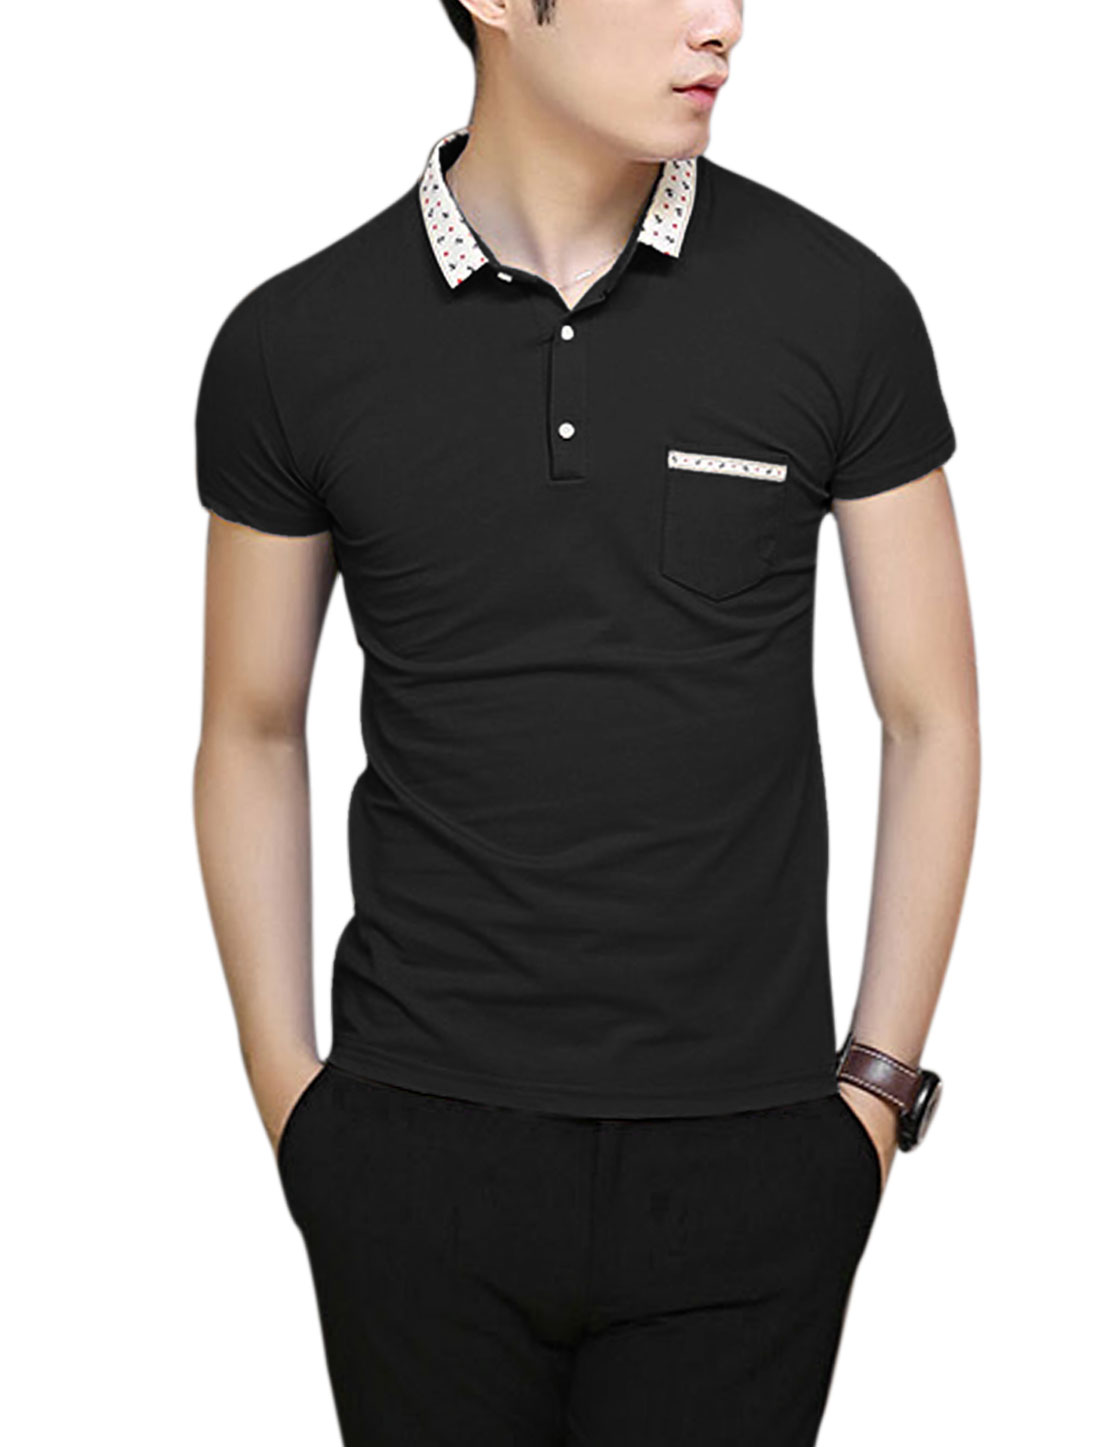 Men Point Collar Three Buttons Closed Slim Fit NEW Polo Shirt Black M